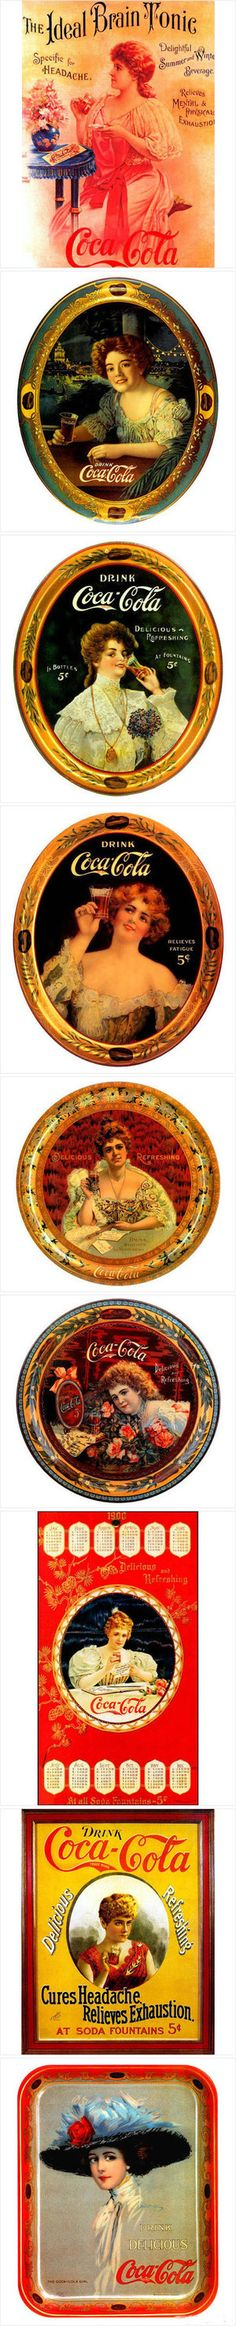 Vintage Coca-Cola Serving Trays - ADS - 堆糖-美好生活研究所 Coca Cola Poster, Coca Cola Ad, Always Coca Cola, Coca Cola Bottles, Retro Ads, Vintage Advertisements, Vintage Ads, Vintage Prints, Old Posters